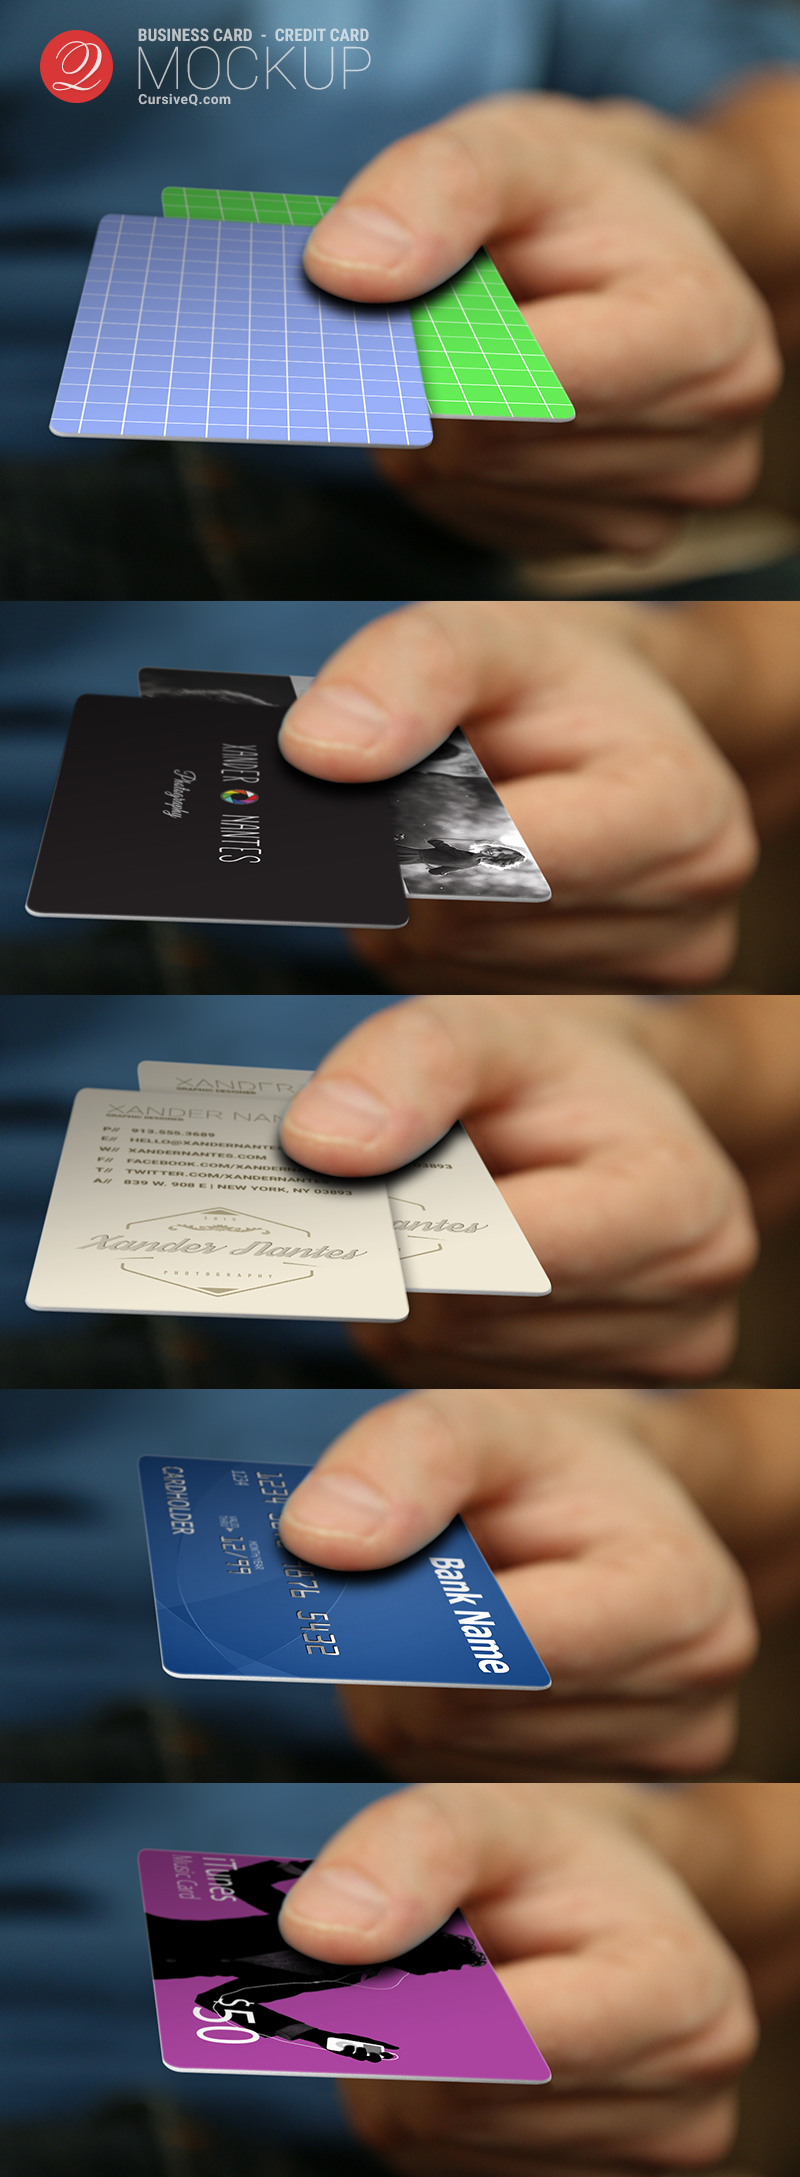 BusinessCard_CreditCard_Hand_Mockup_preview_long